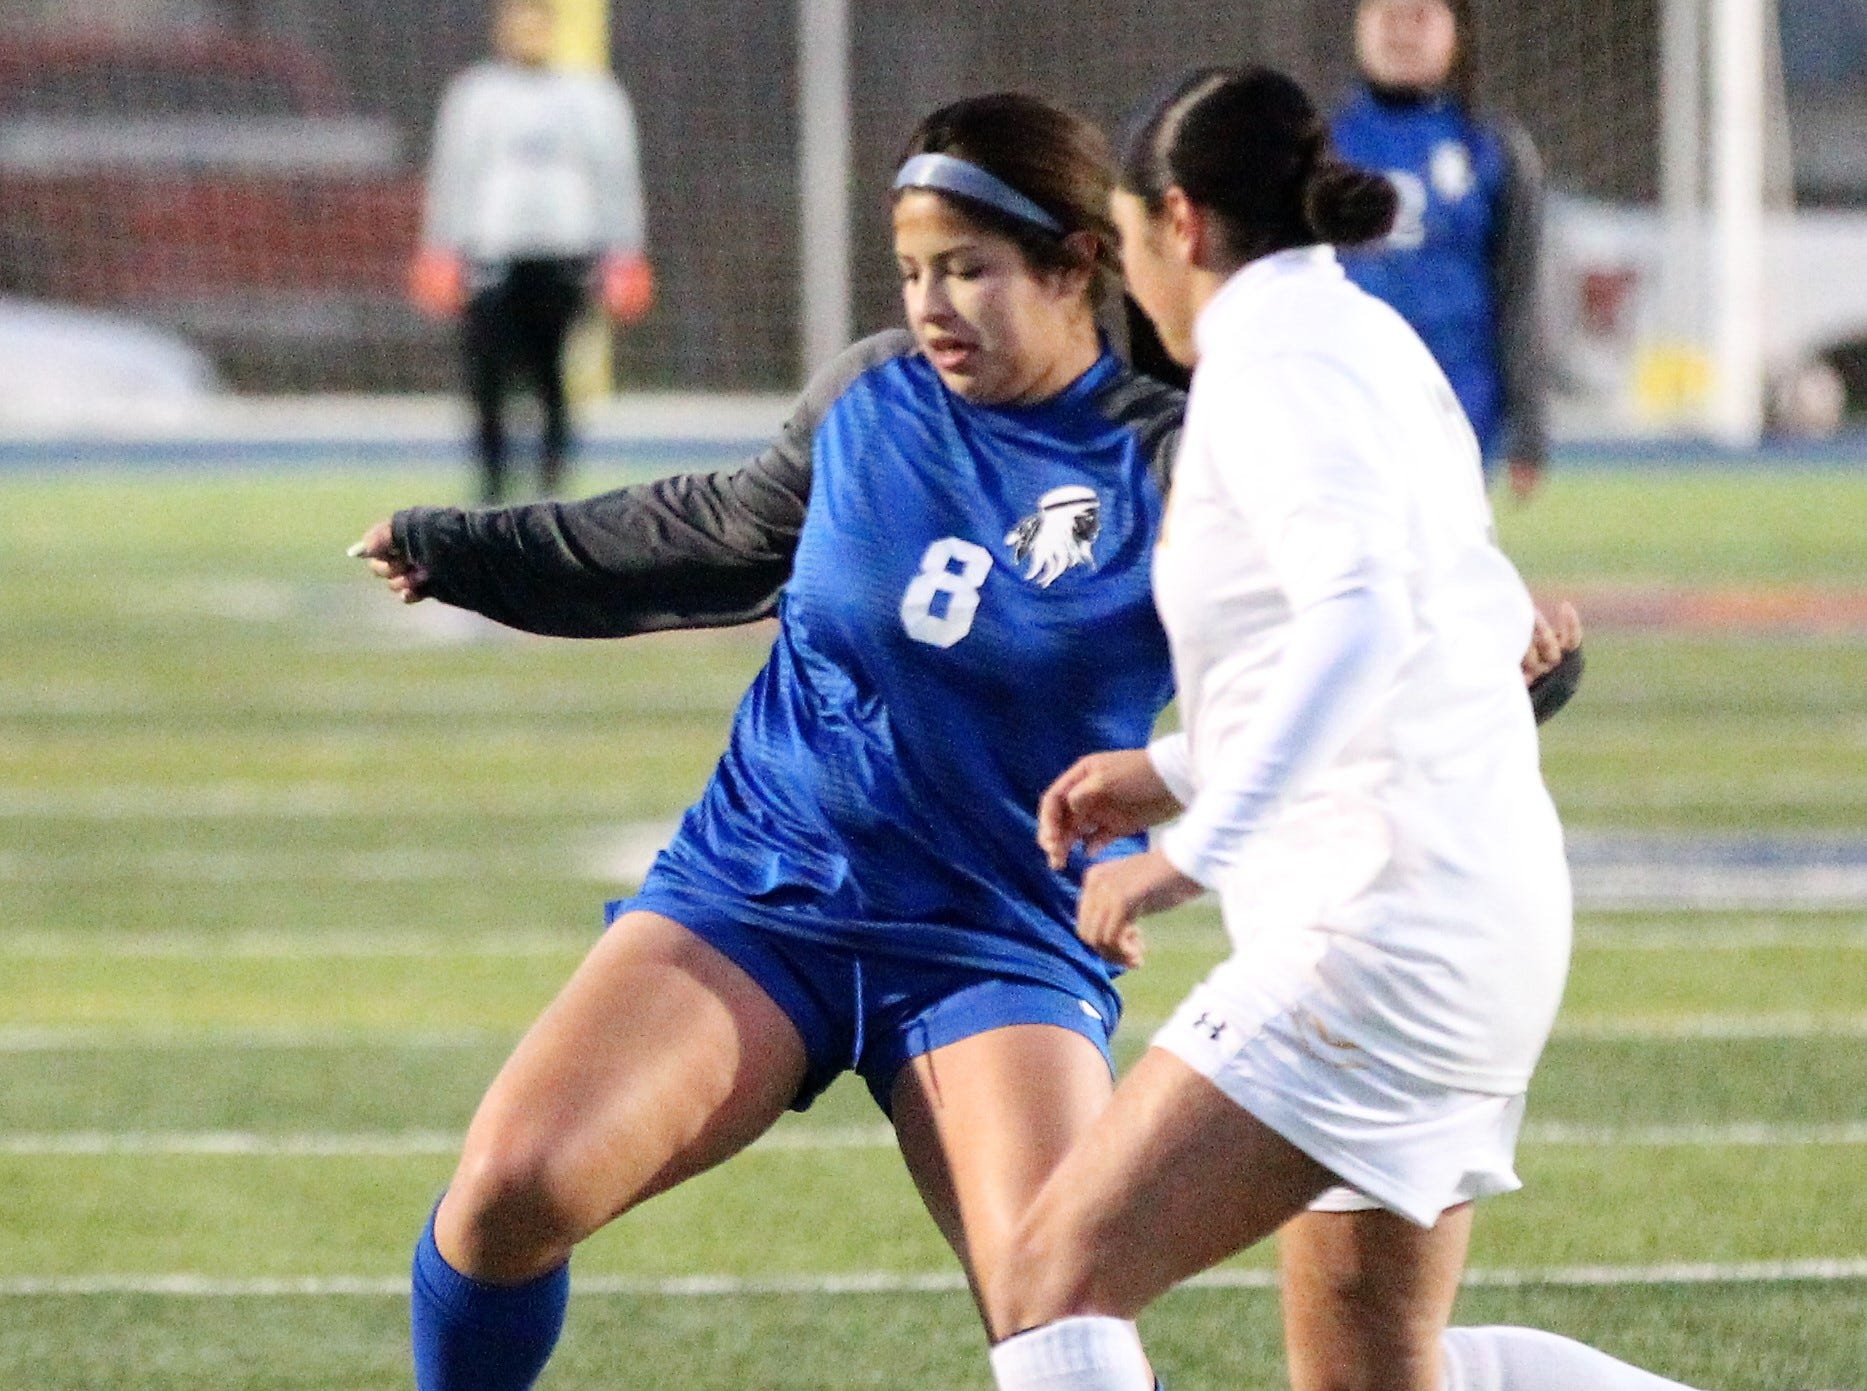 Lake View's Ariana Rangel (right) fights for the ball in a District 4-4A soccer match against Snyder at Old Bobcat Stadium on Tuesday, March 5, 2019.